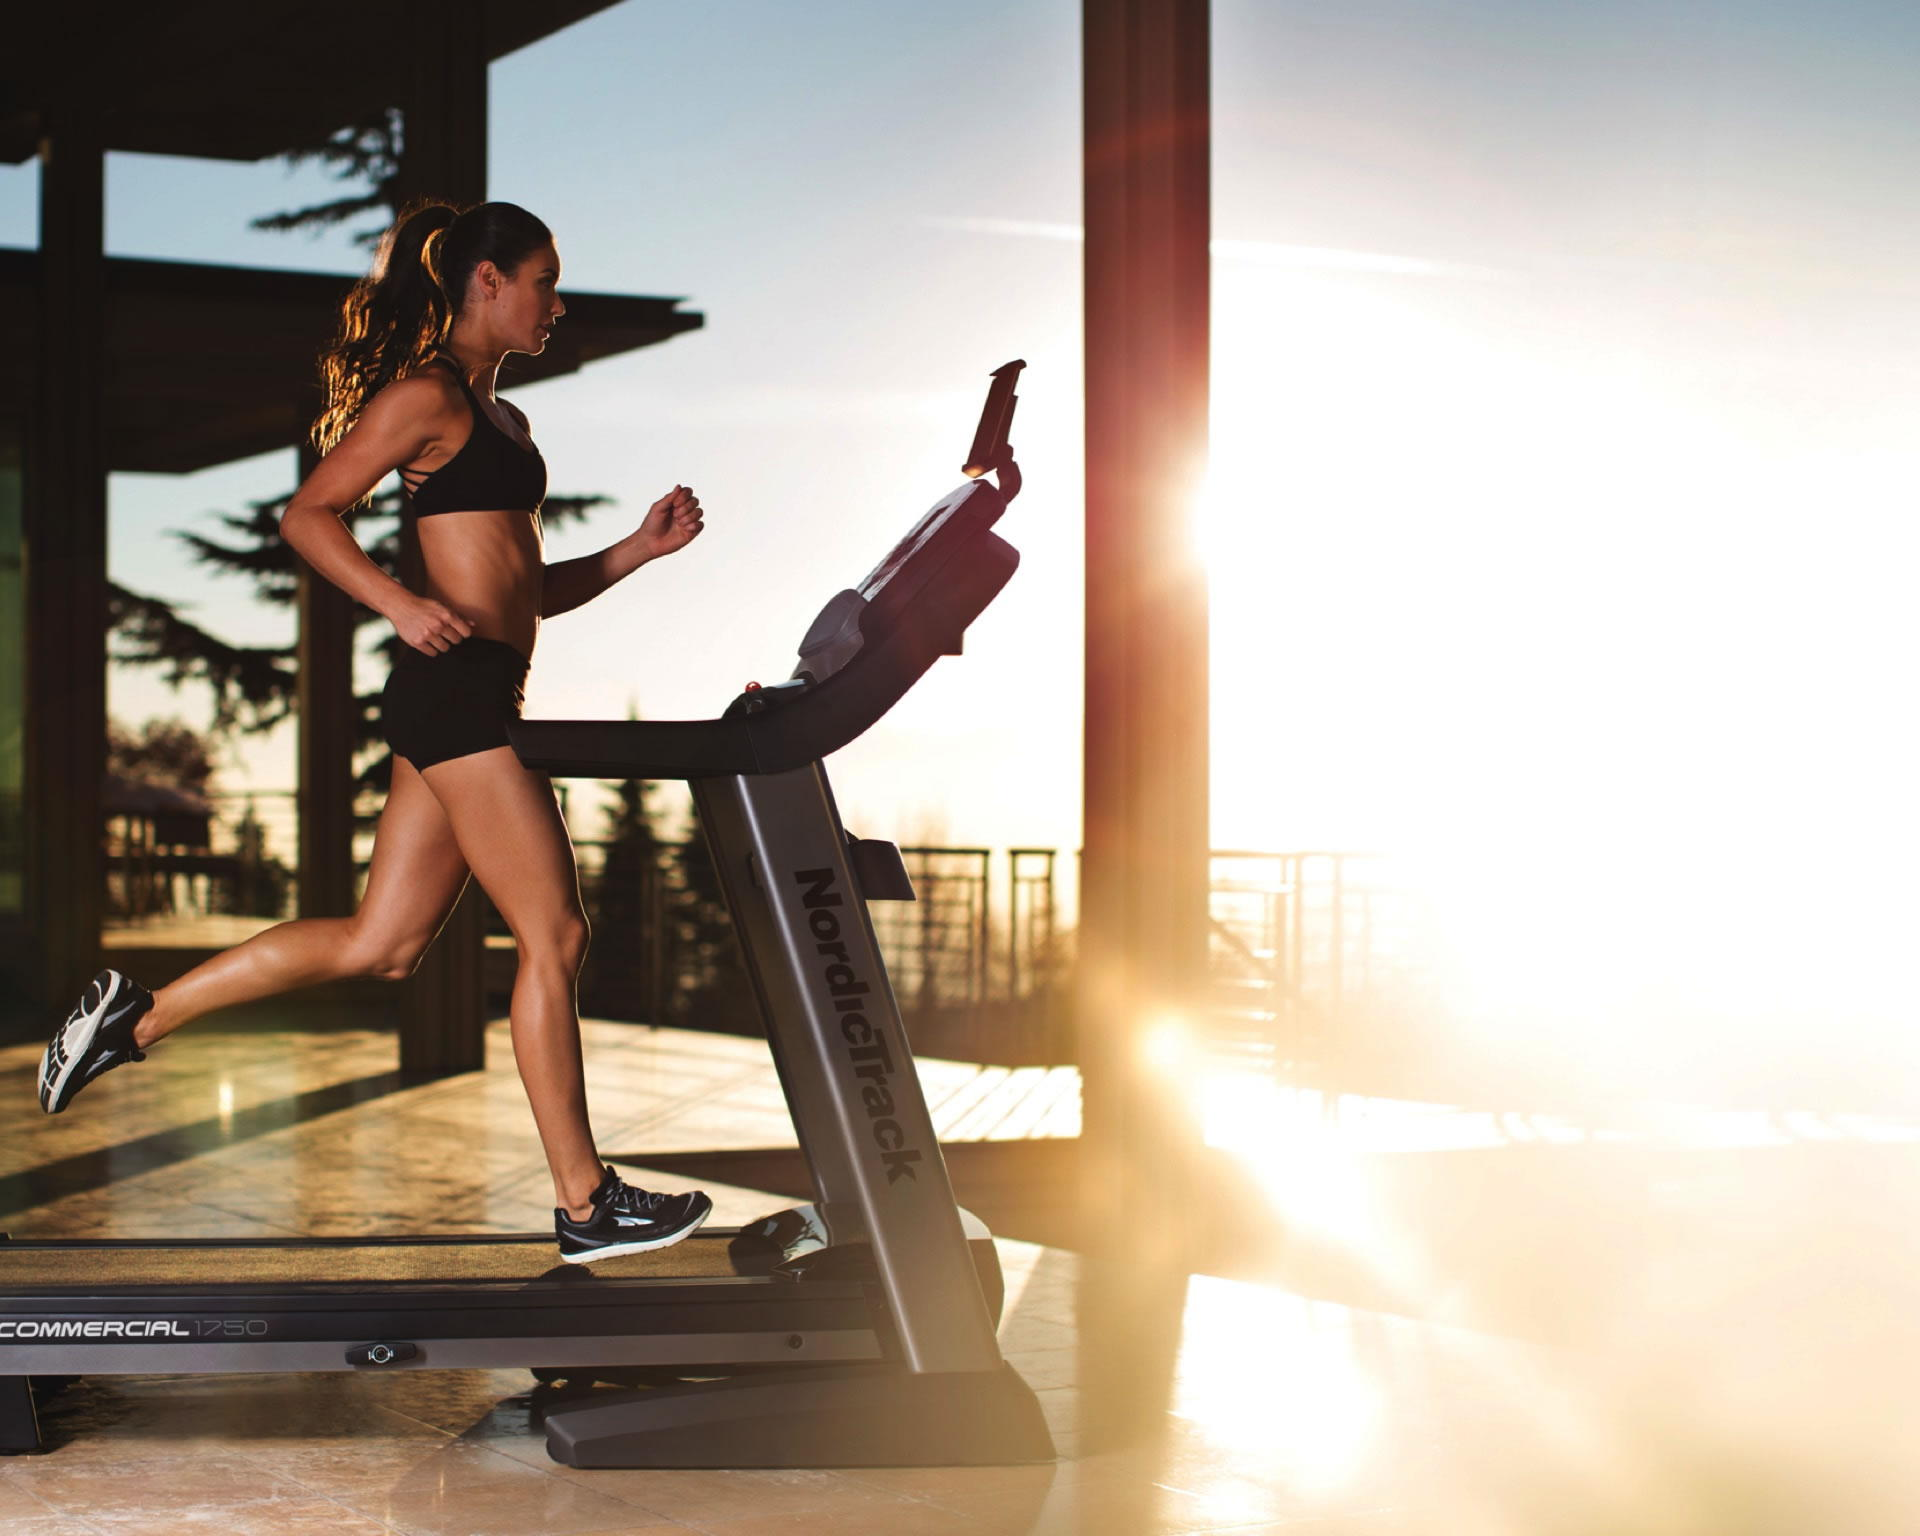 The Commercial 1750  is the best selling Nordictrack treadmill, now on sale for $1,799